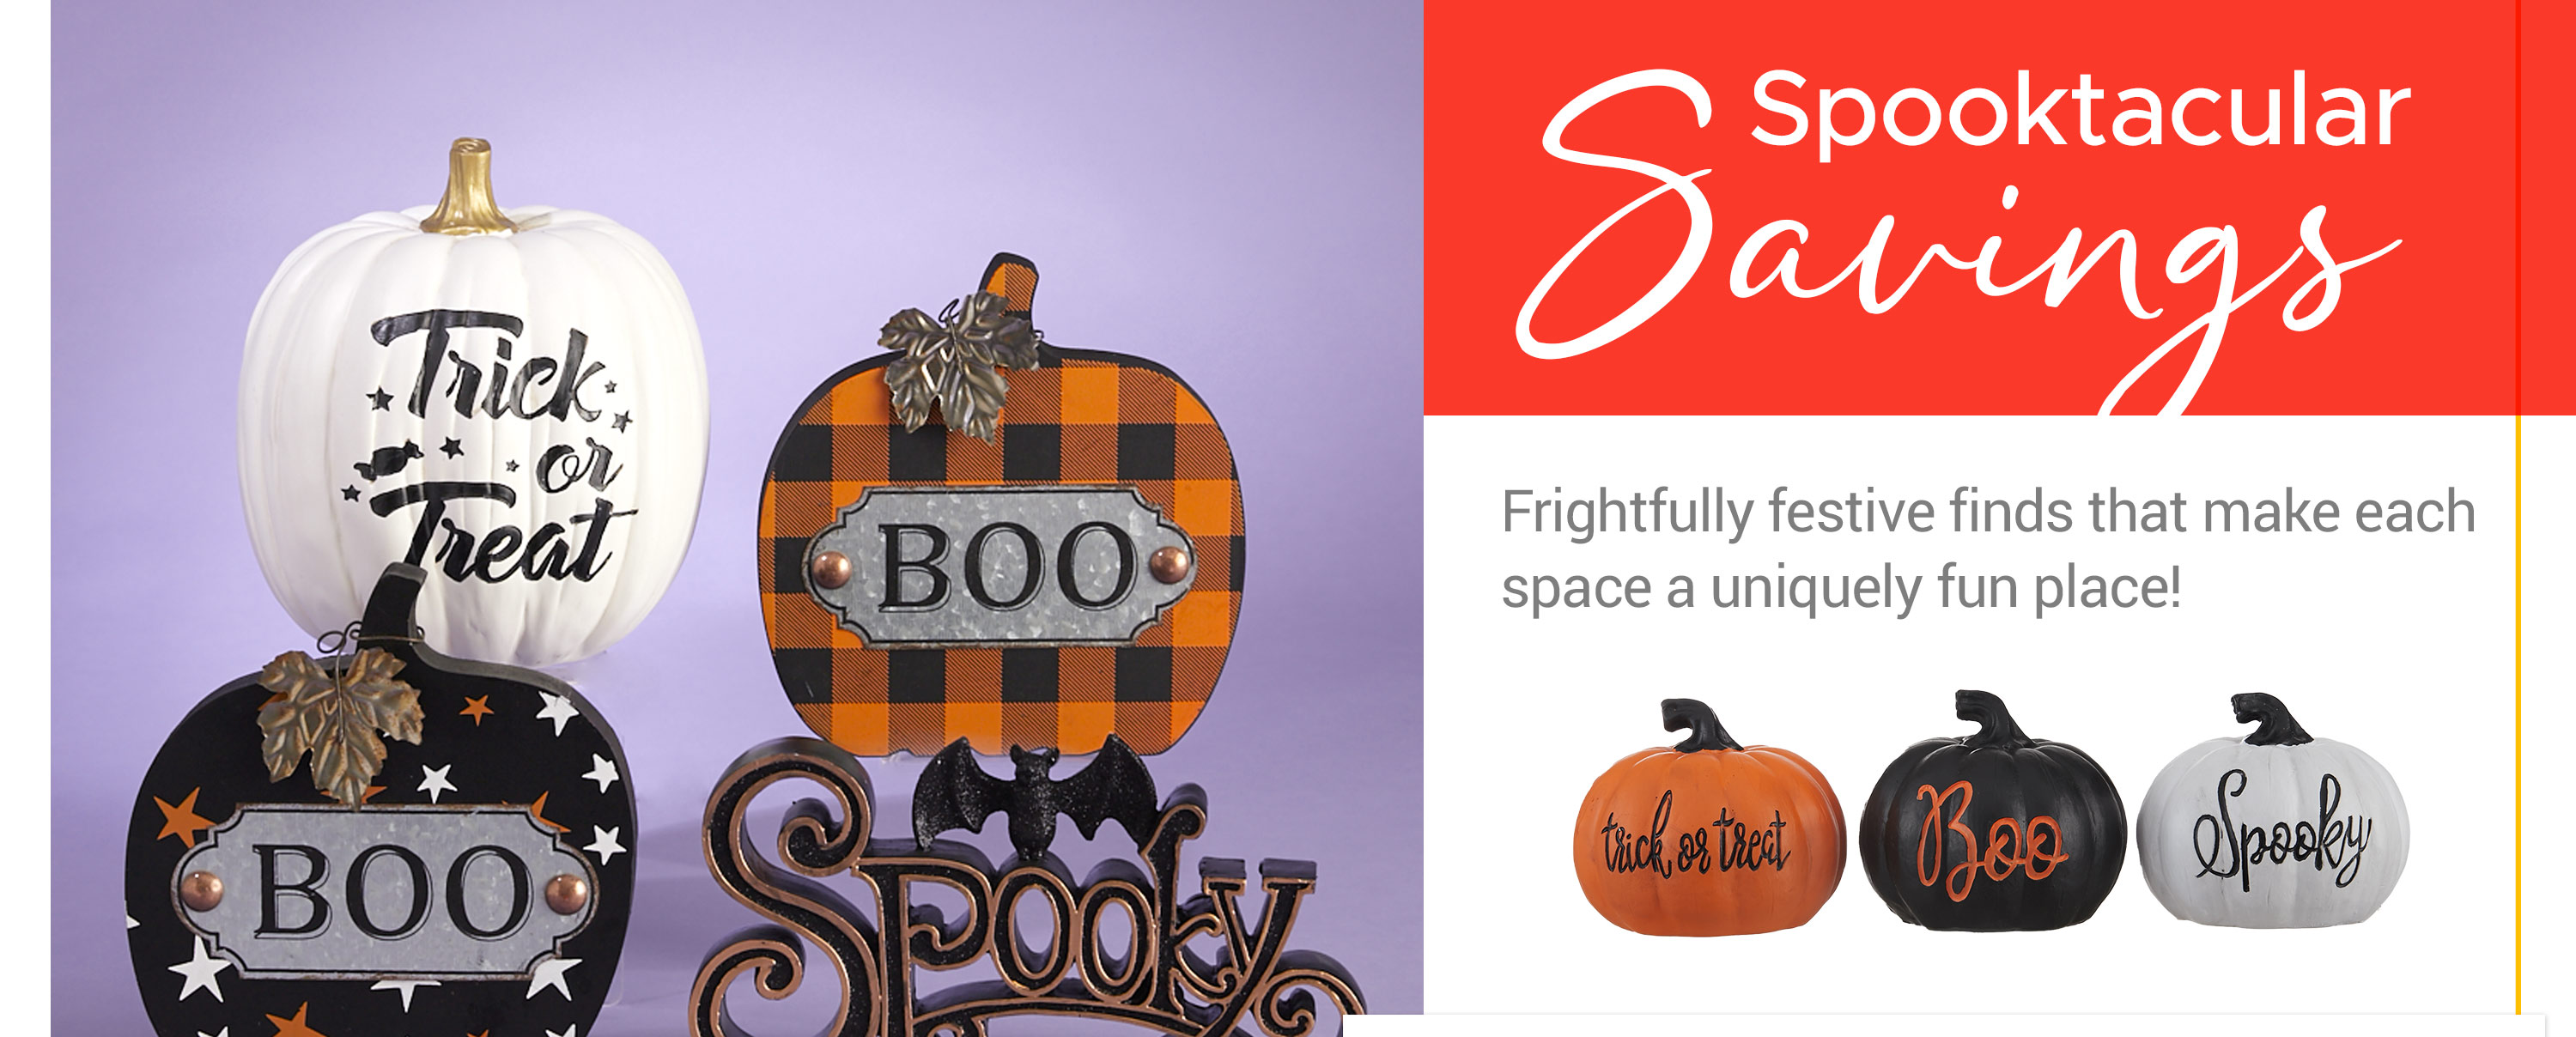 Spooktacular Savings - Frightfully festive finds that make each space a uniquely fun place!